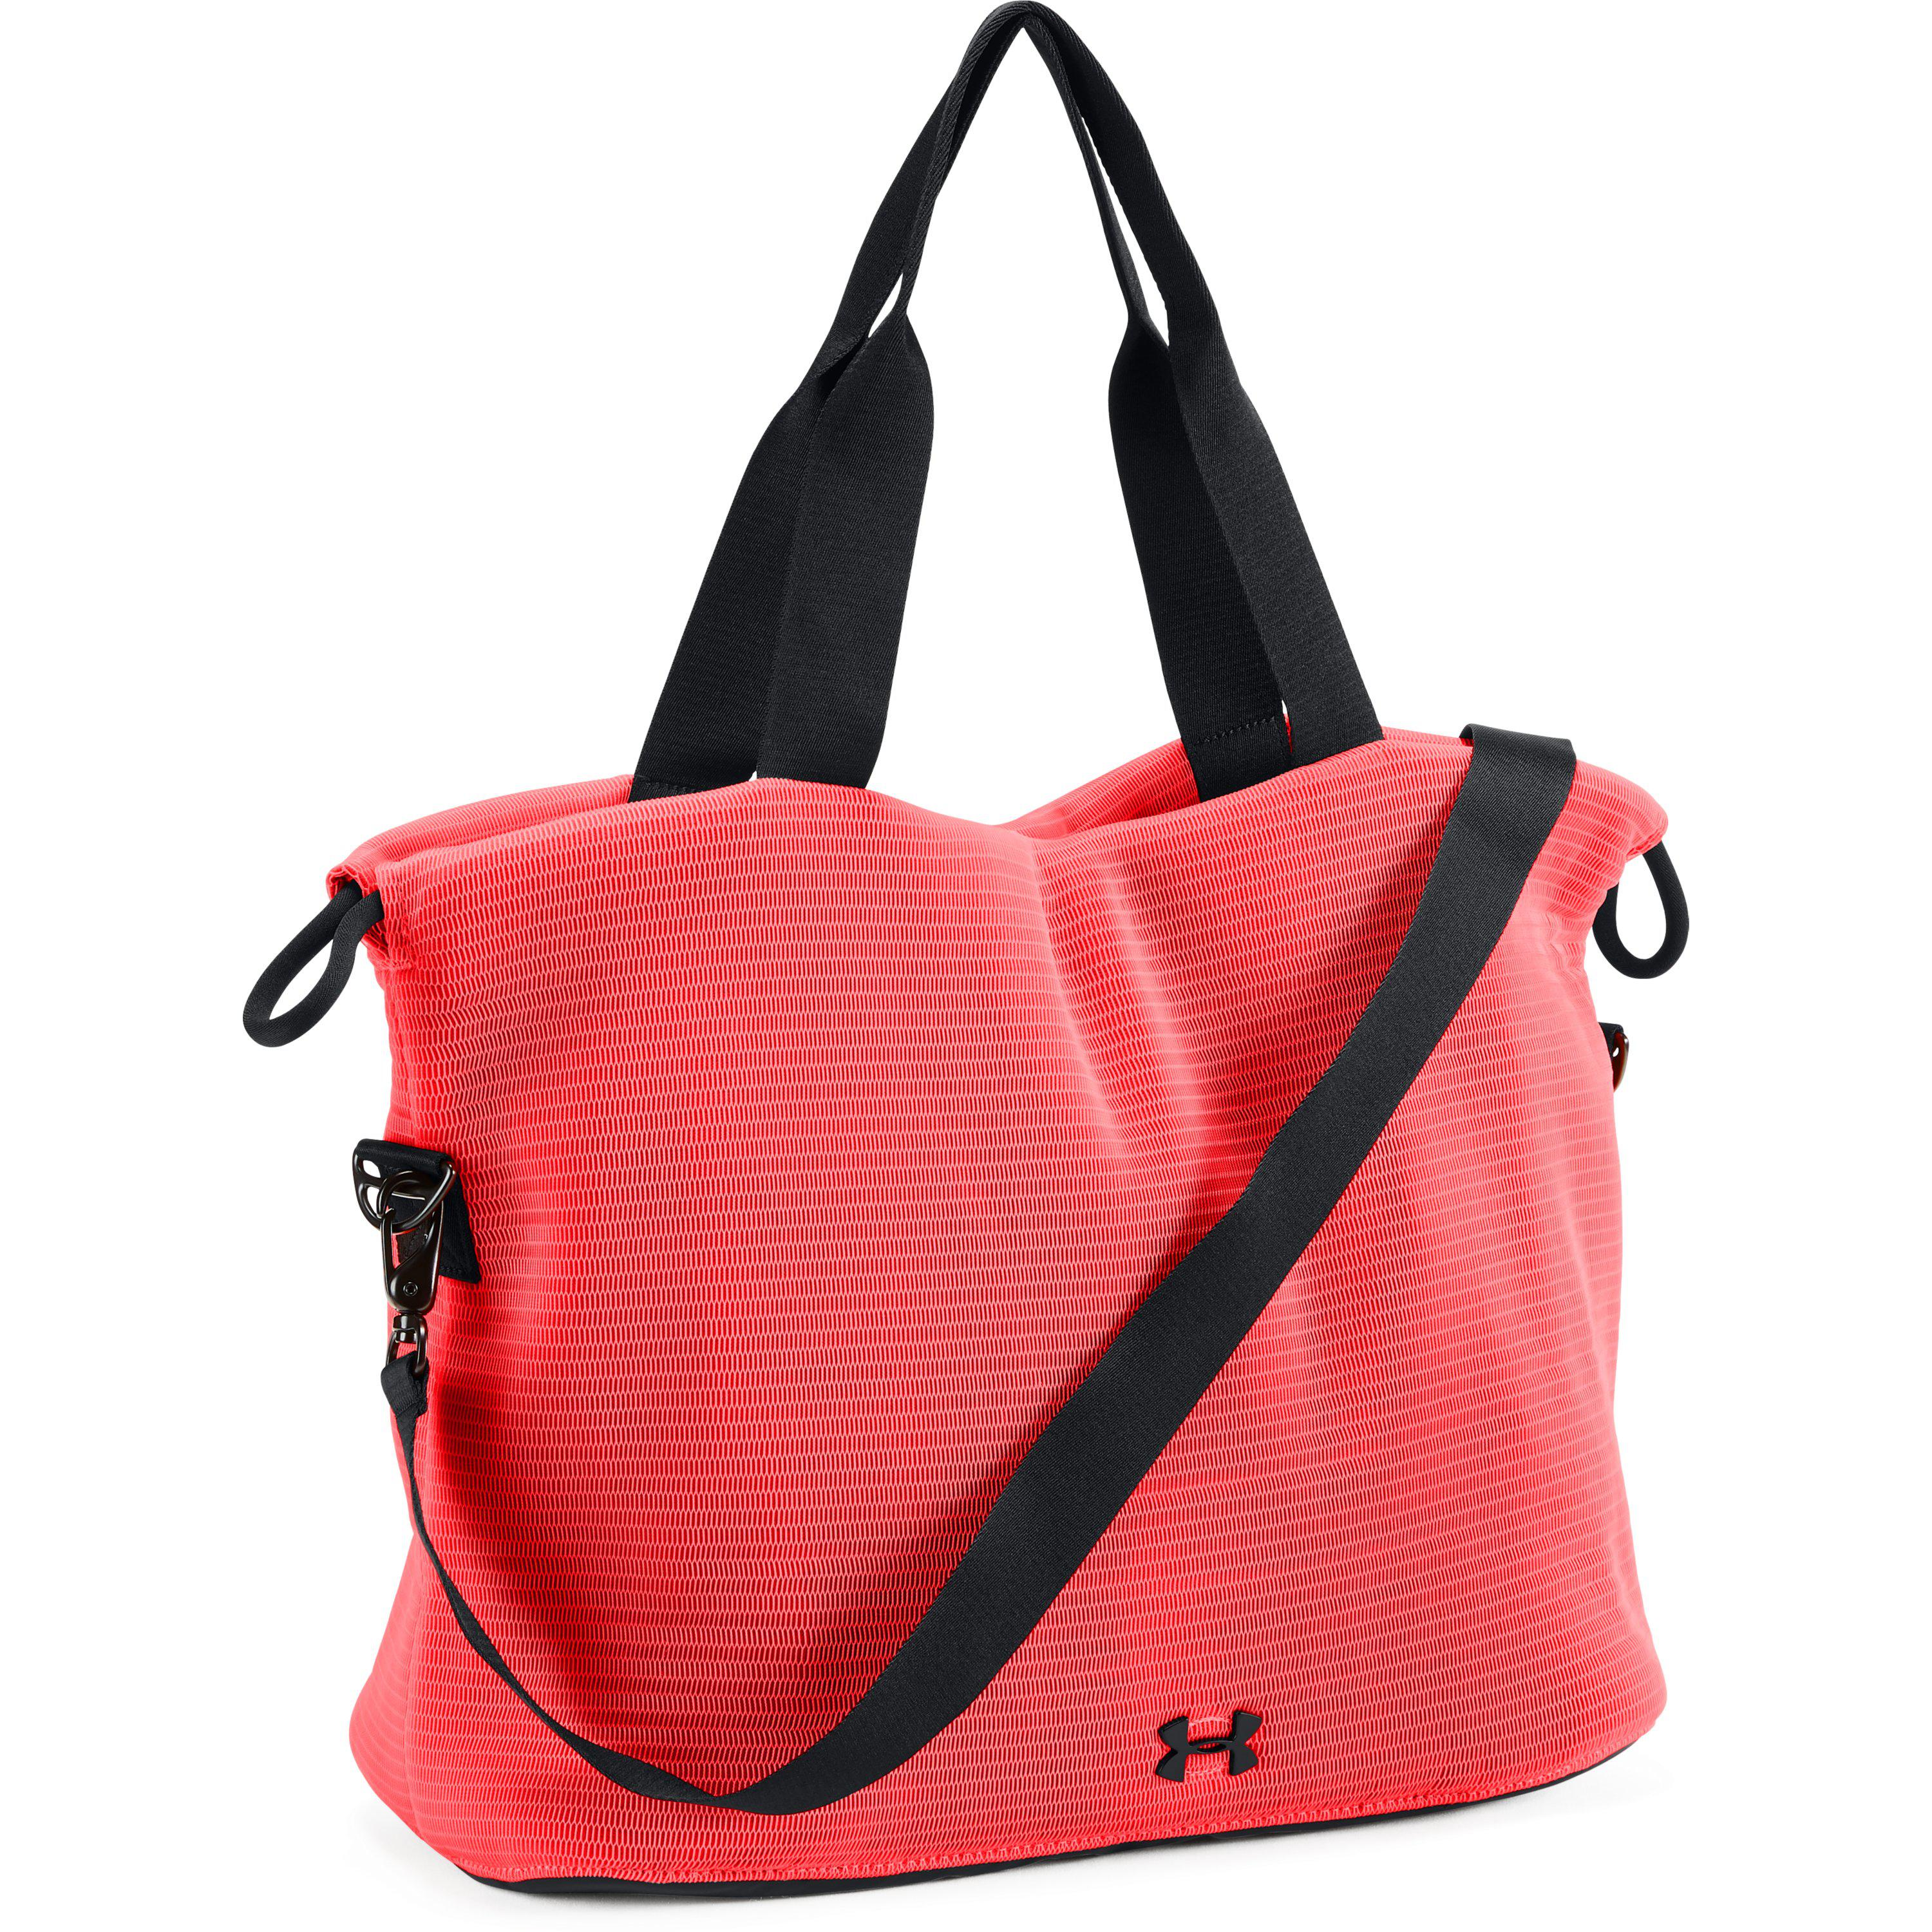 0cac5224c1 Under Armour Women's Ua Cinch Mesh Tote in Red - Lyst